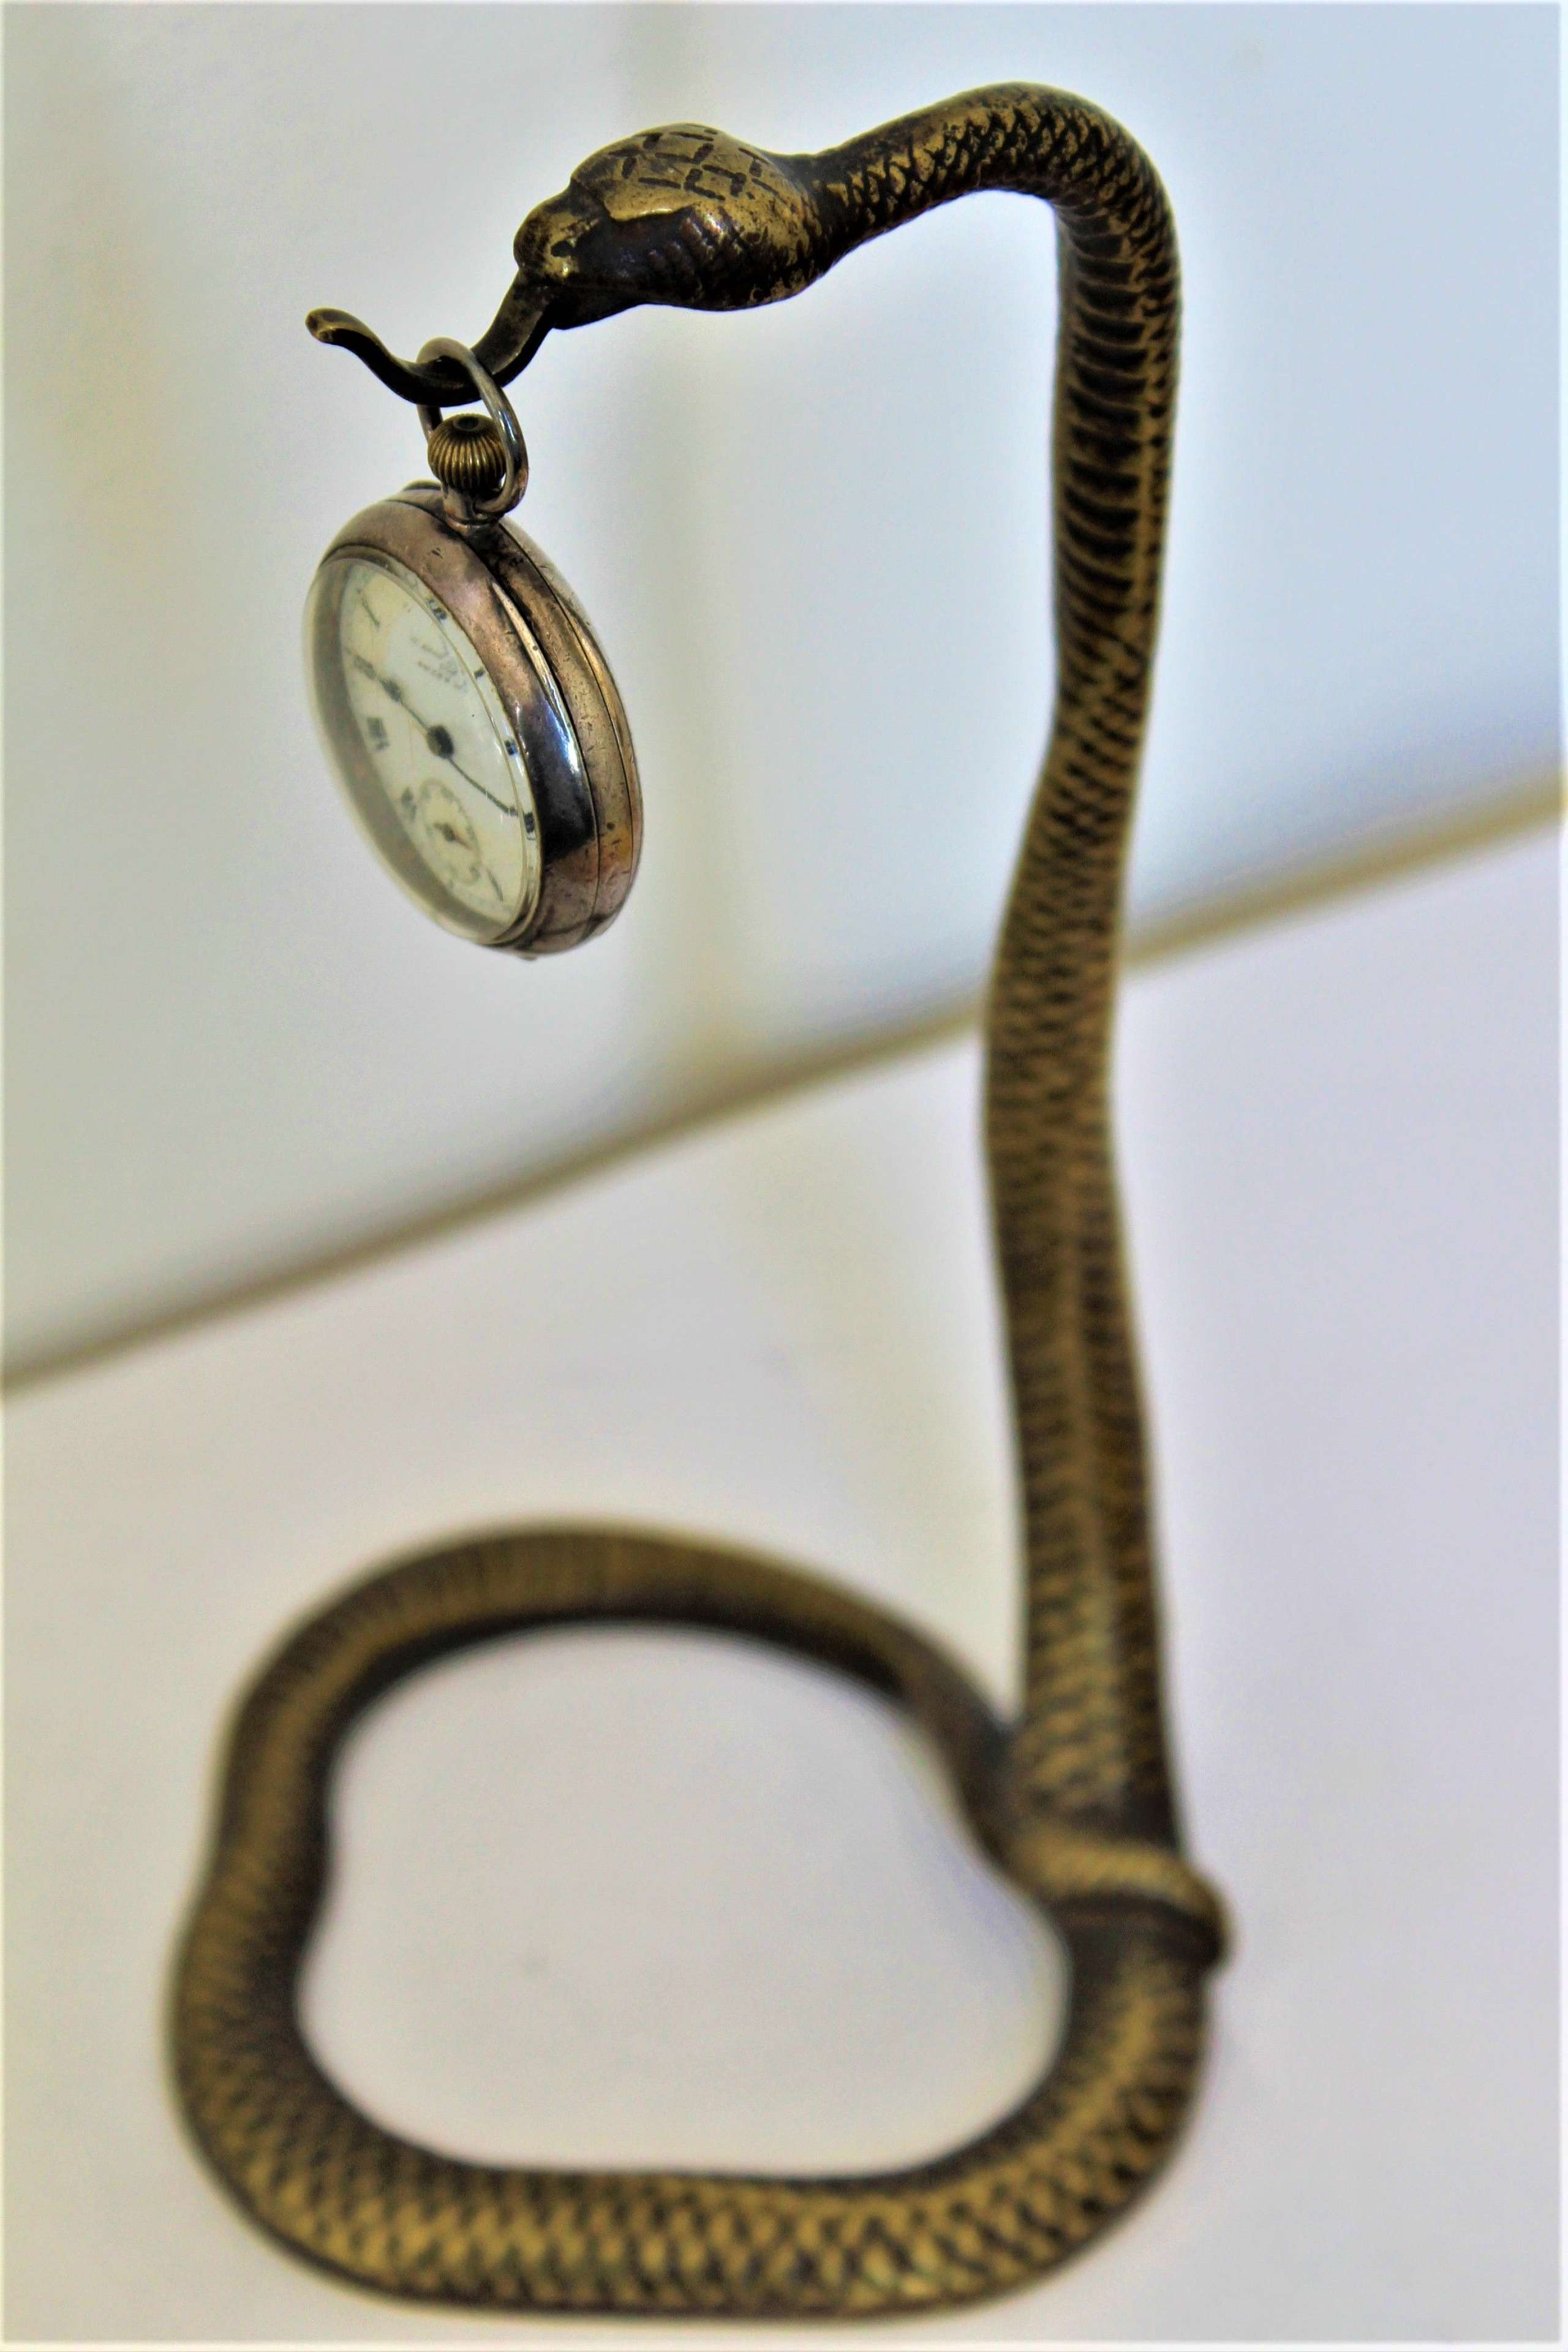 A tall and very stylish bronze / brass watch stand watch not included